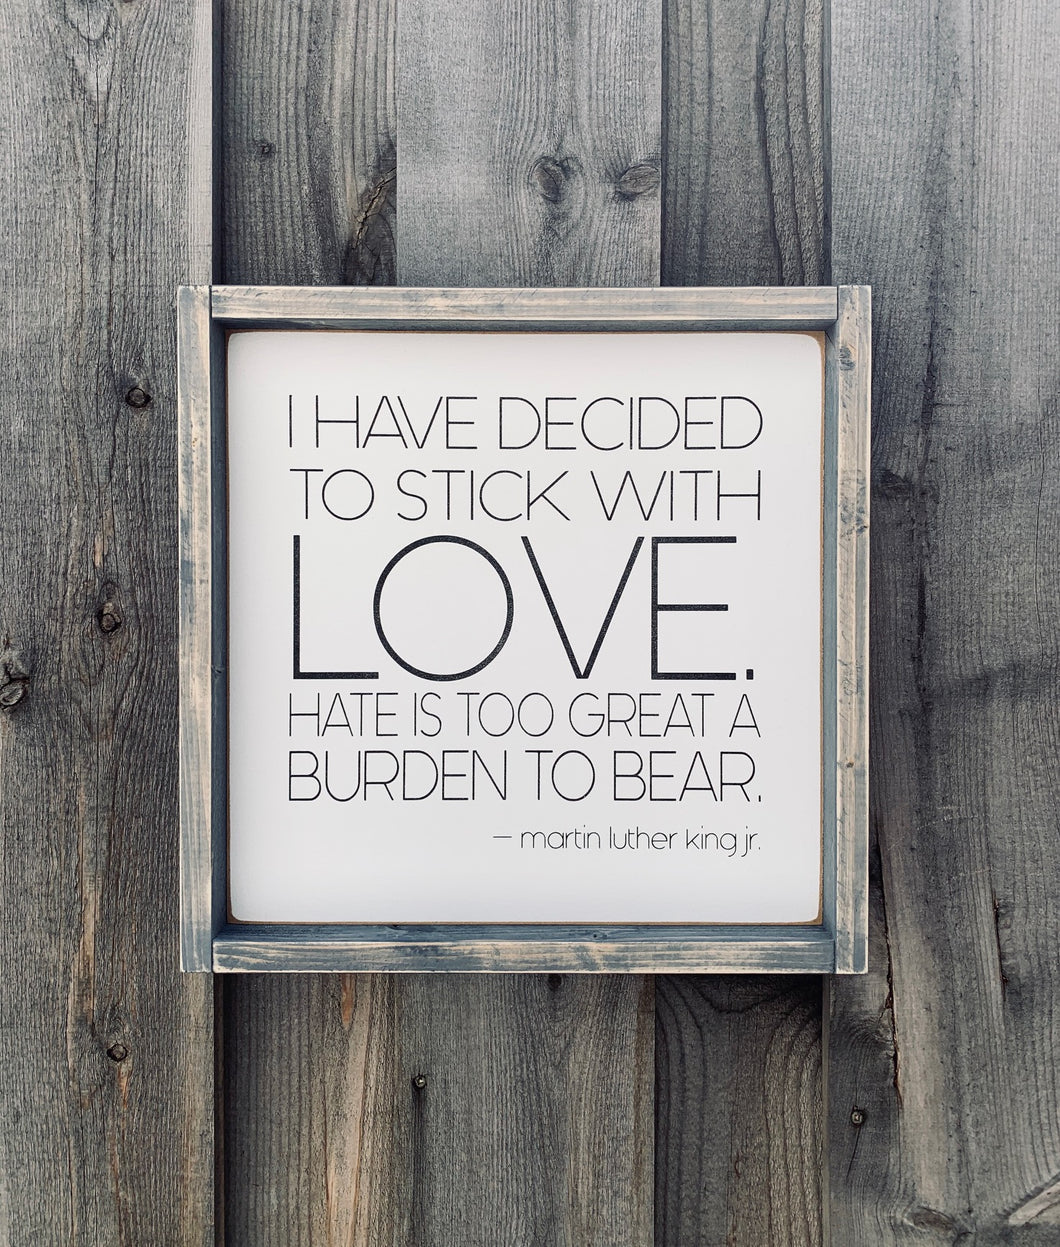 Stick With Love - Martin Luther King Jr. - Wood sign